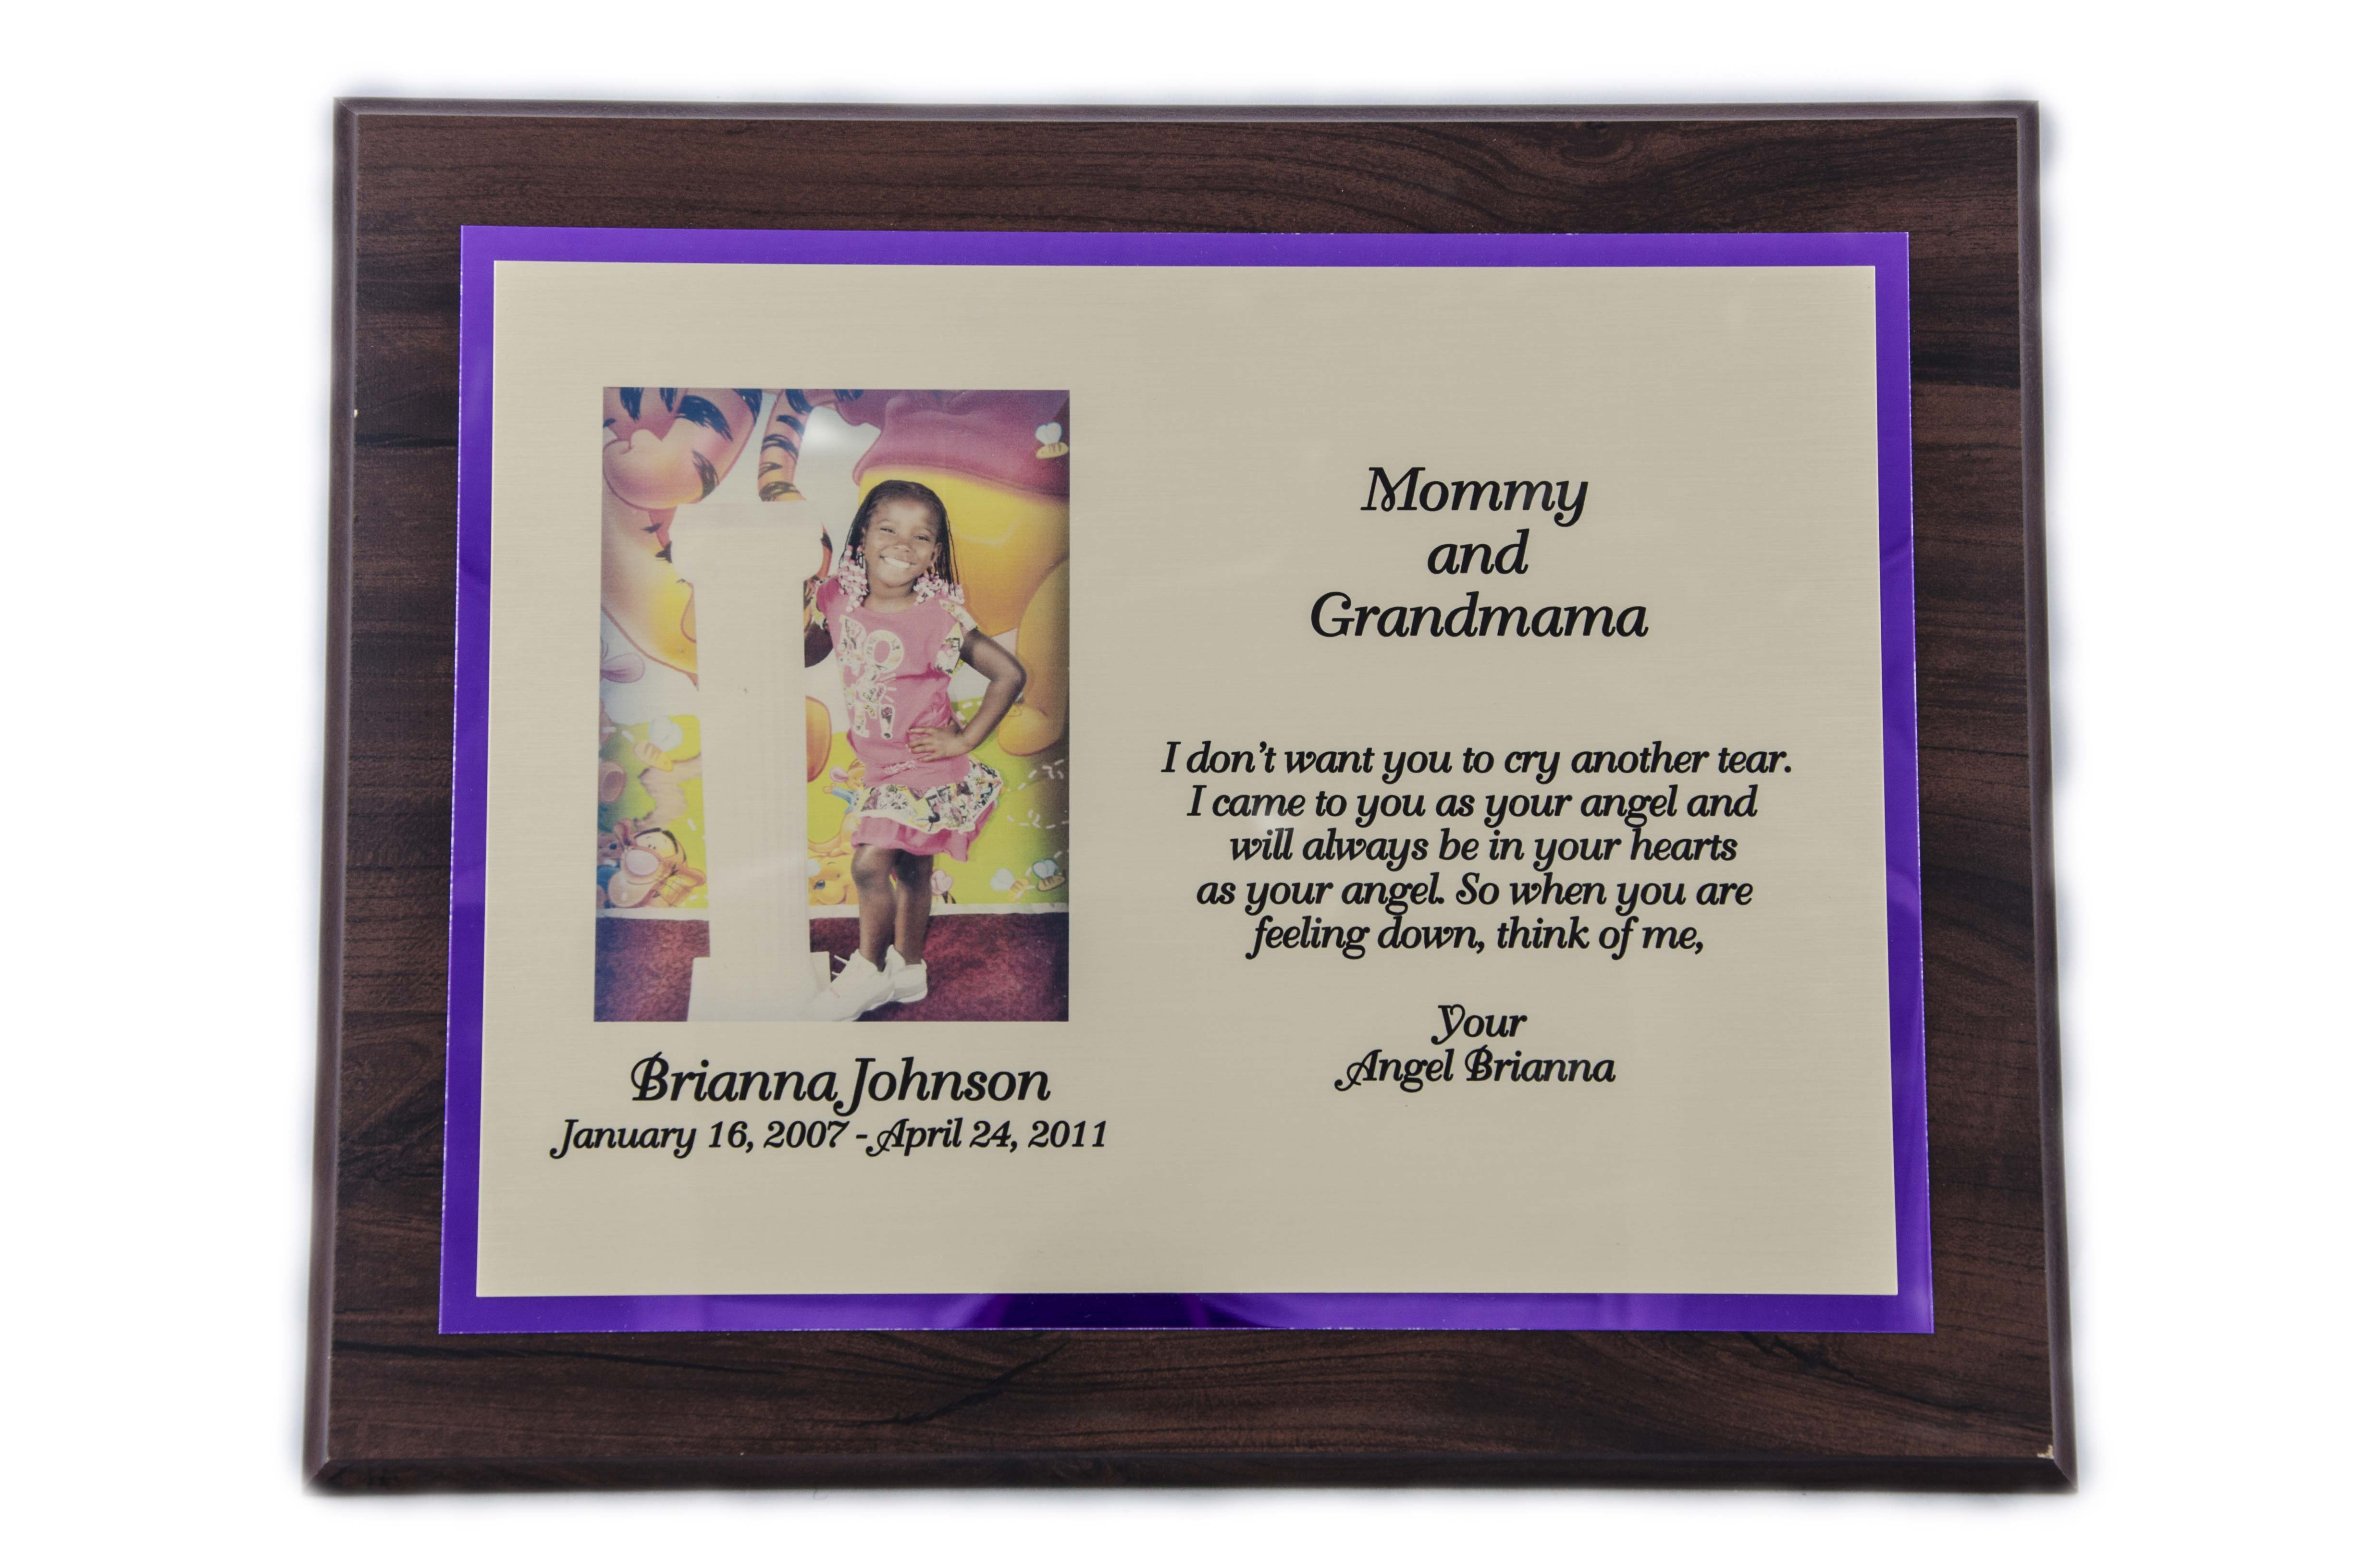 10'' x 13'' oak wood finished plaque - P1013